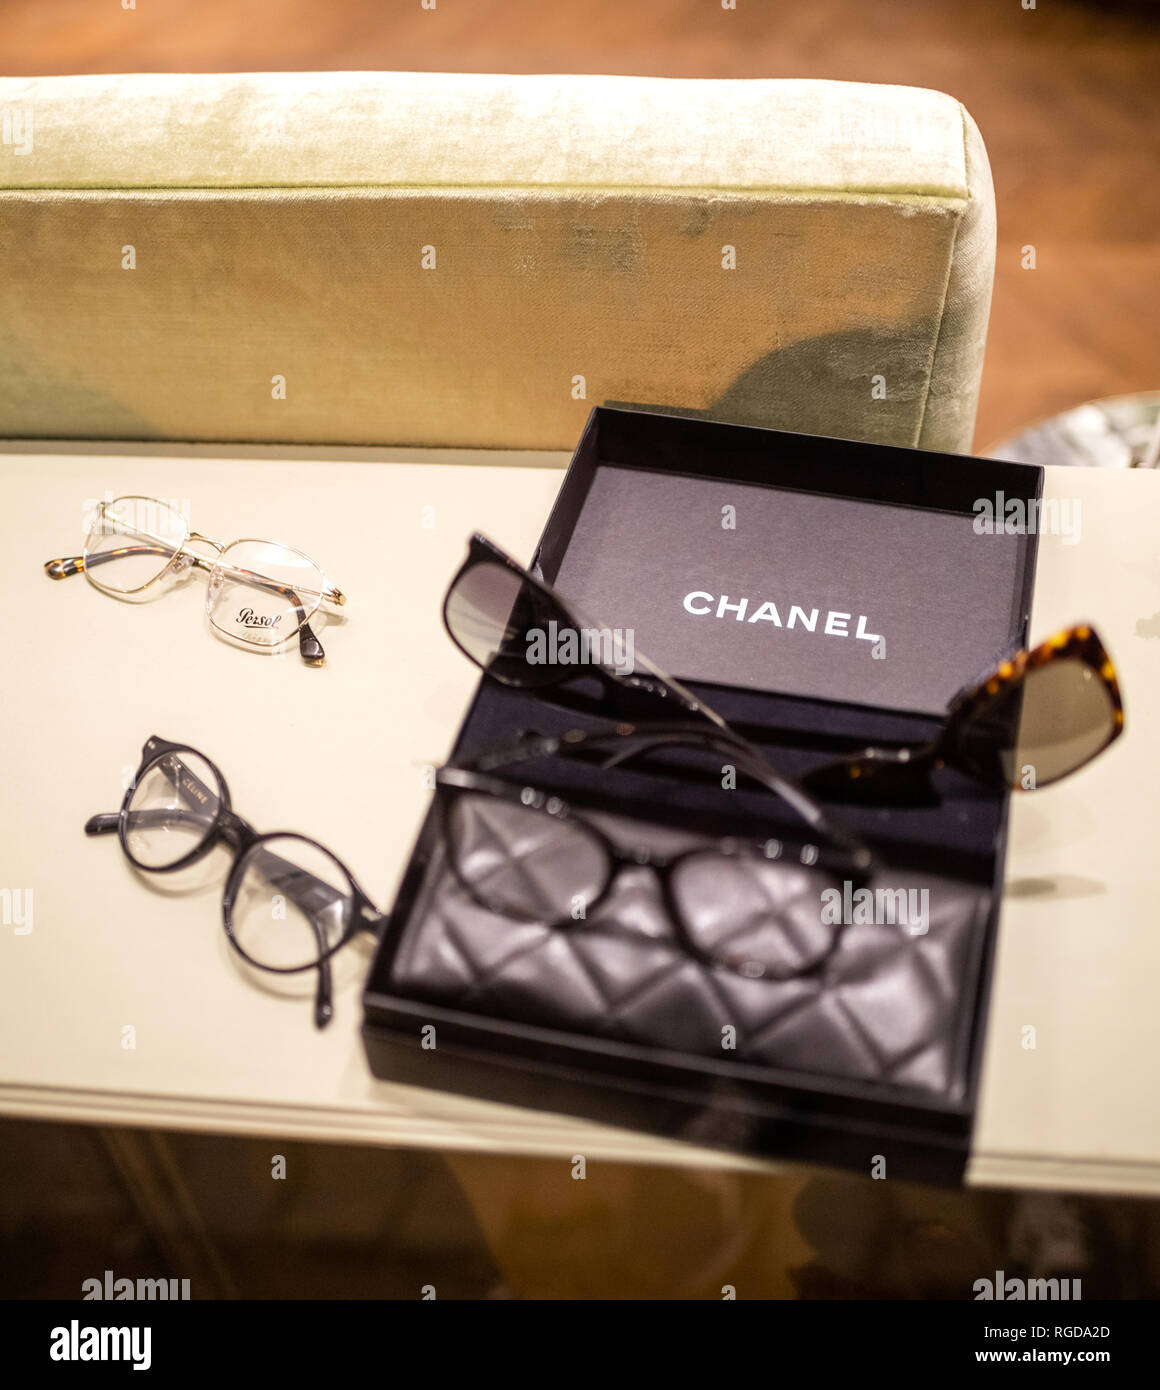 STRASBOURG, FRANCE - OCT 28, 2018: Multiple luxury Chanel, Persol and Gucci eyewear frames in a Chanel box at the optometrist optician office - Stock Image